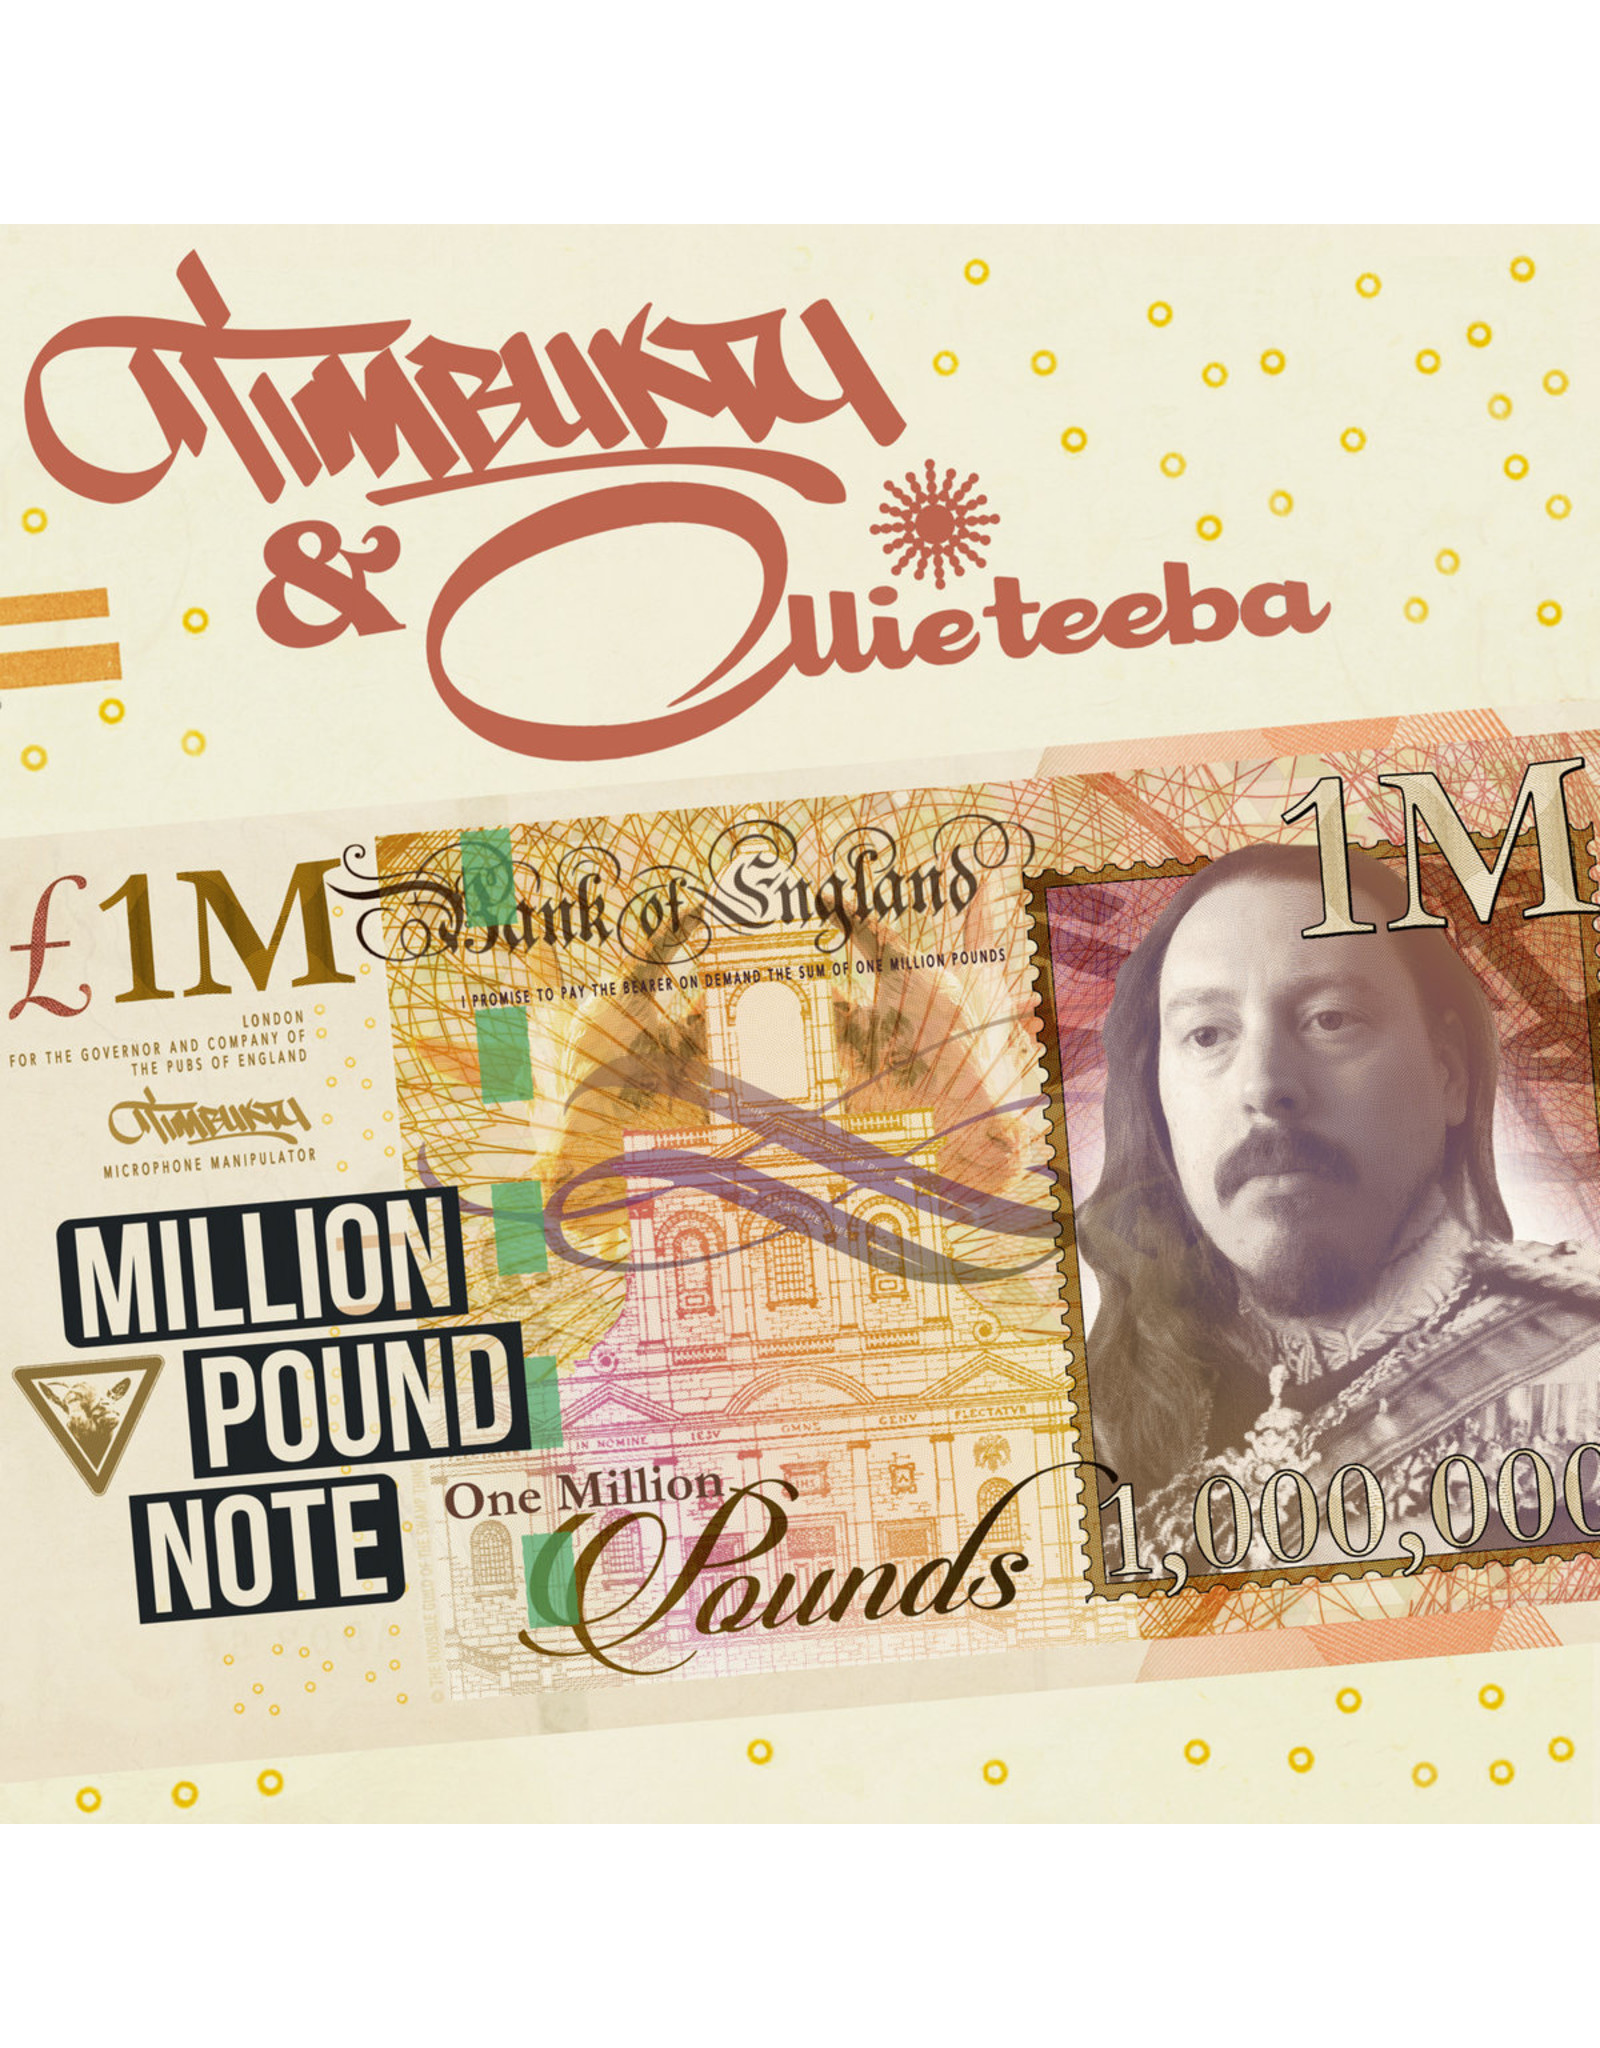 New Vinyl Timbuktu & Ollie Teeba - Million Pound Note (Colored) LP